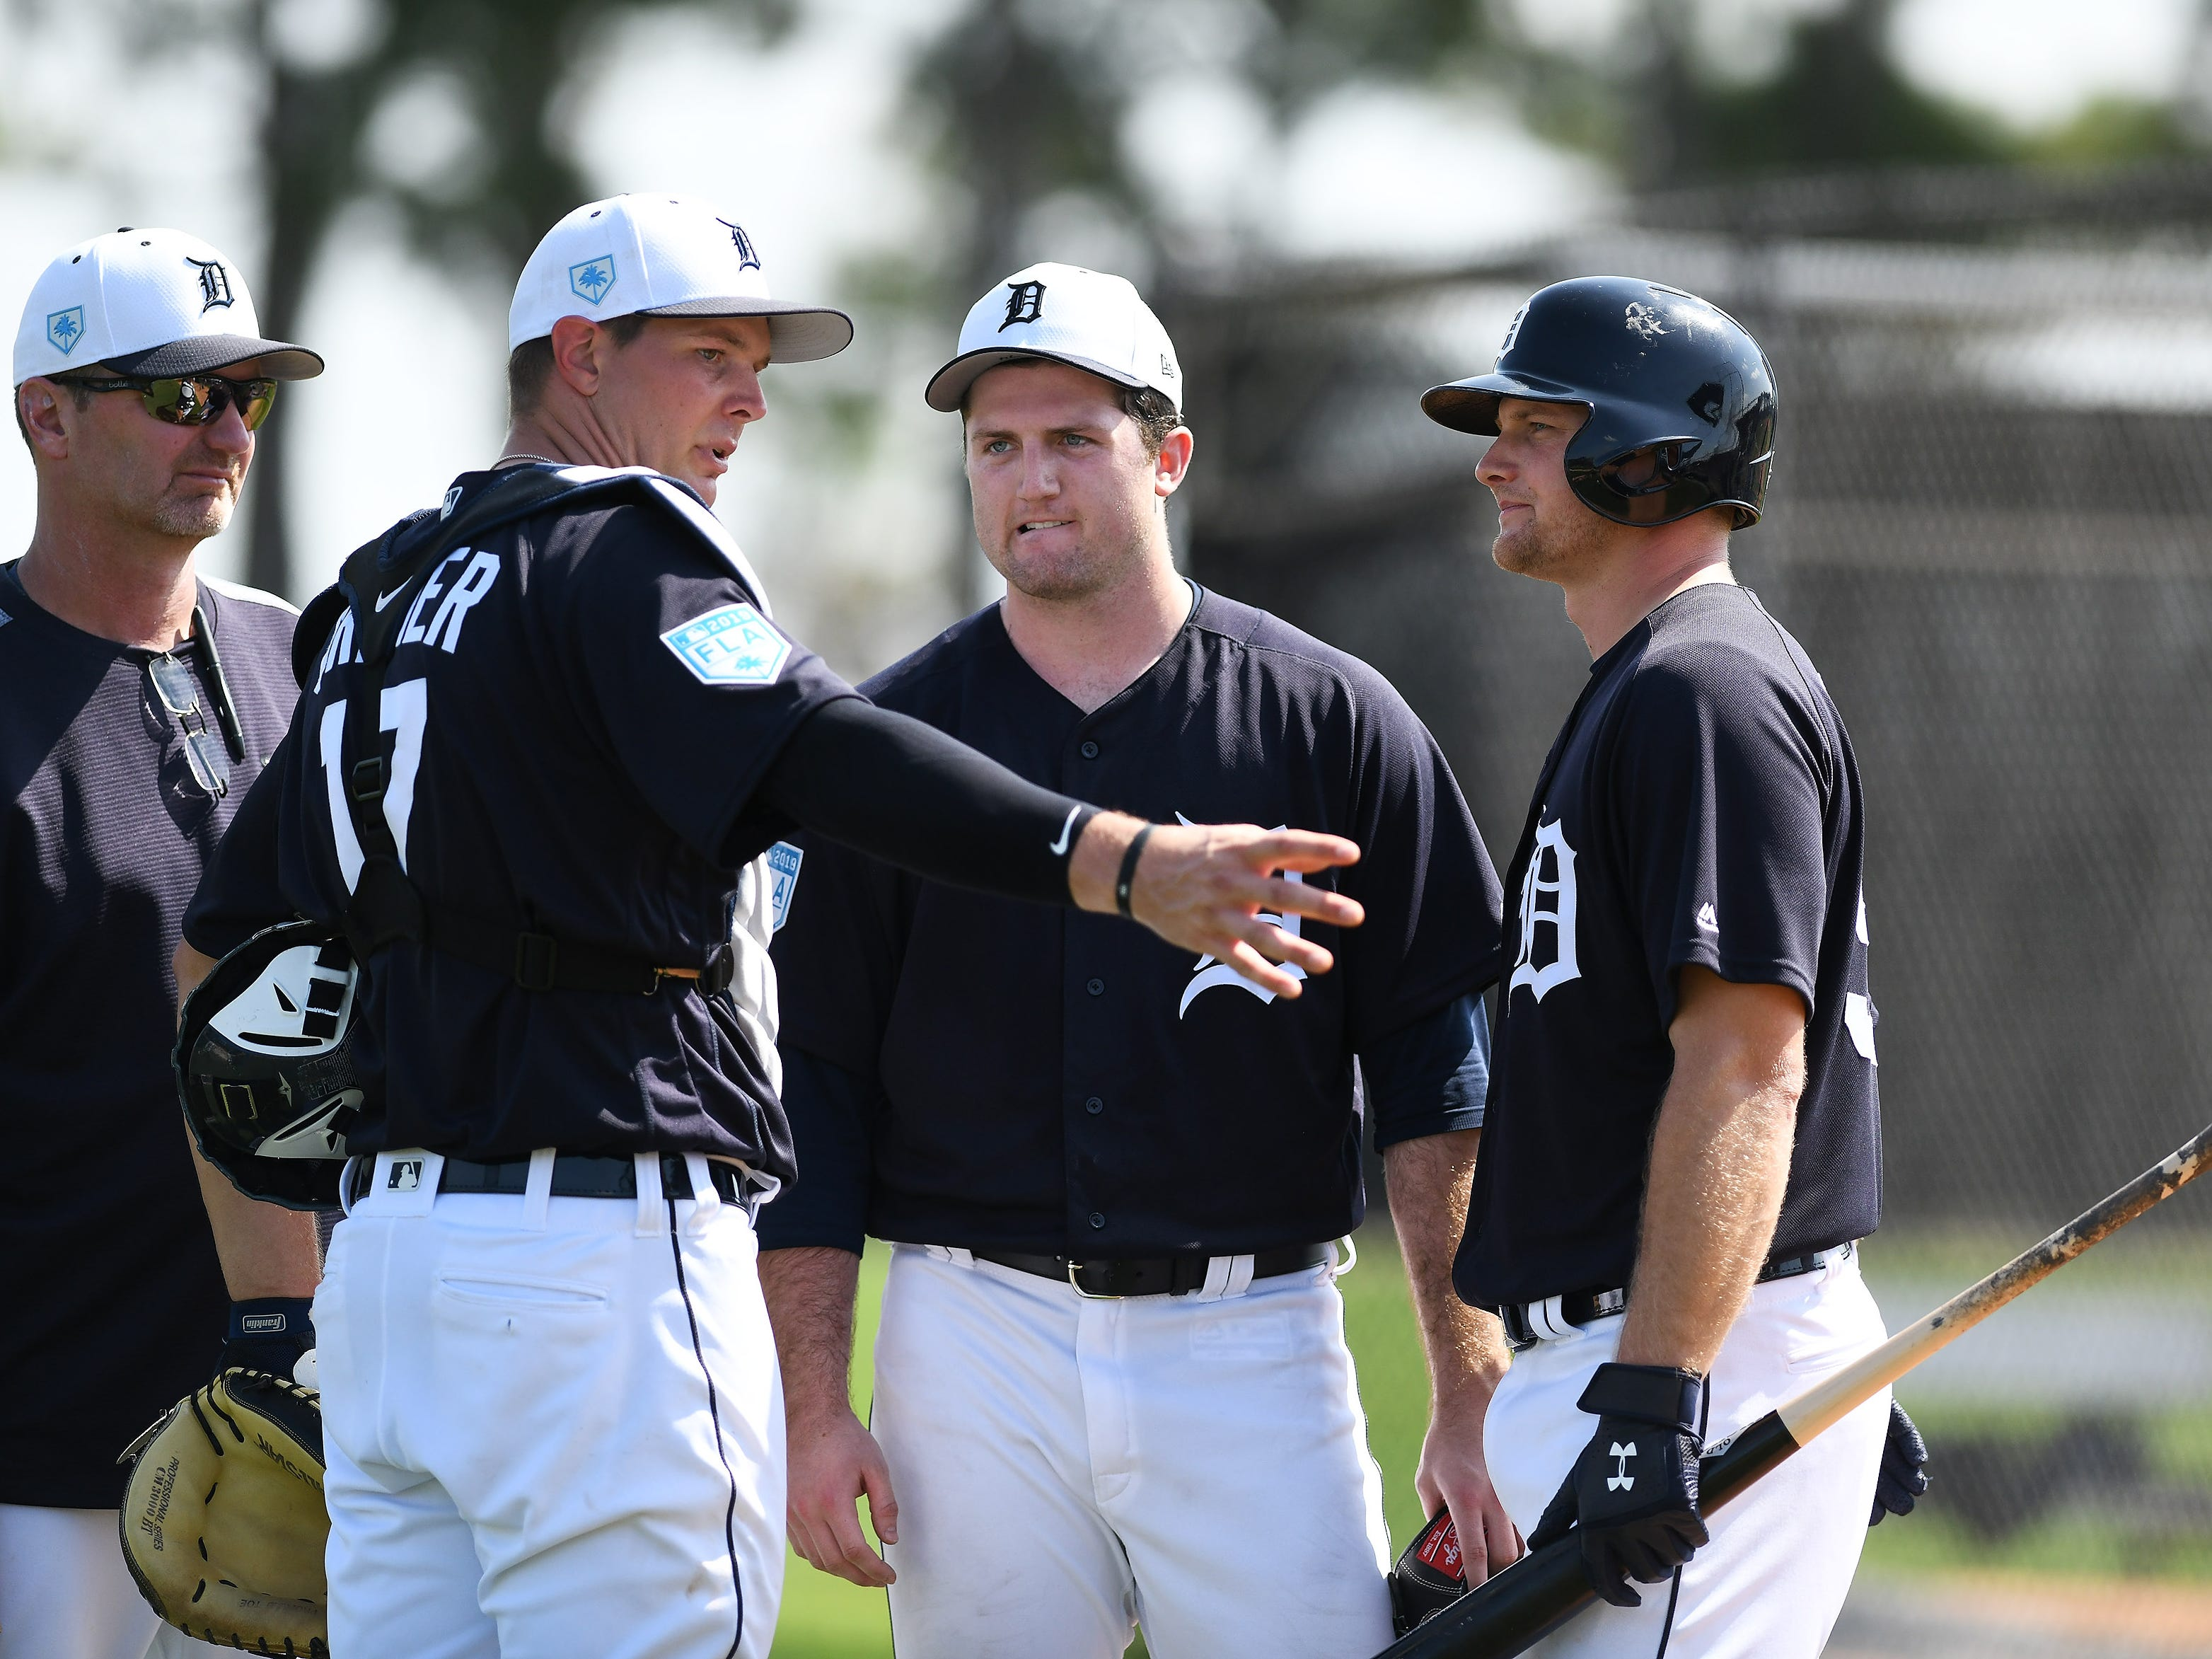 Tigers catcher Grayson Greiner (17) talks with pitcher Casey Mize and catcher John Hicks, right, after Mize pitched live batting practice.